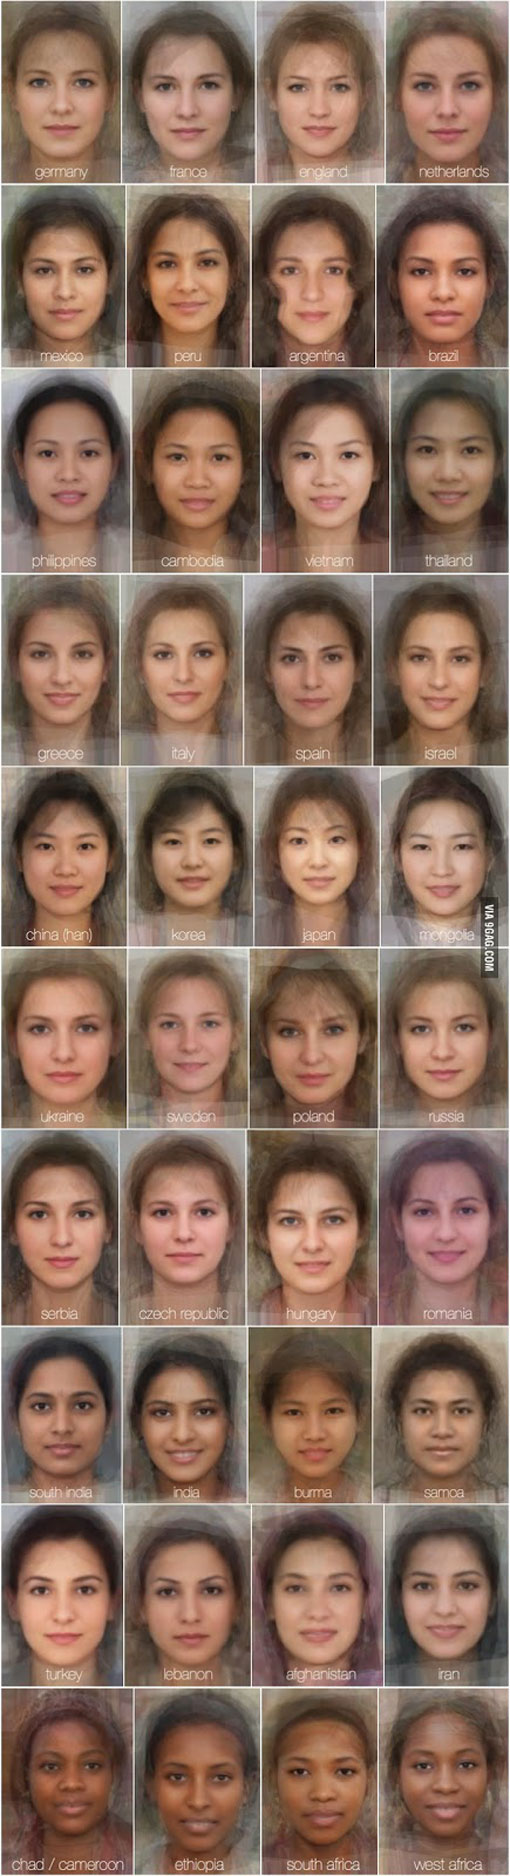 The-Average-Women-Faces-in-Different-Countries